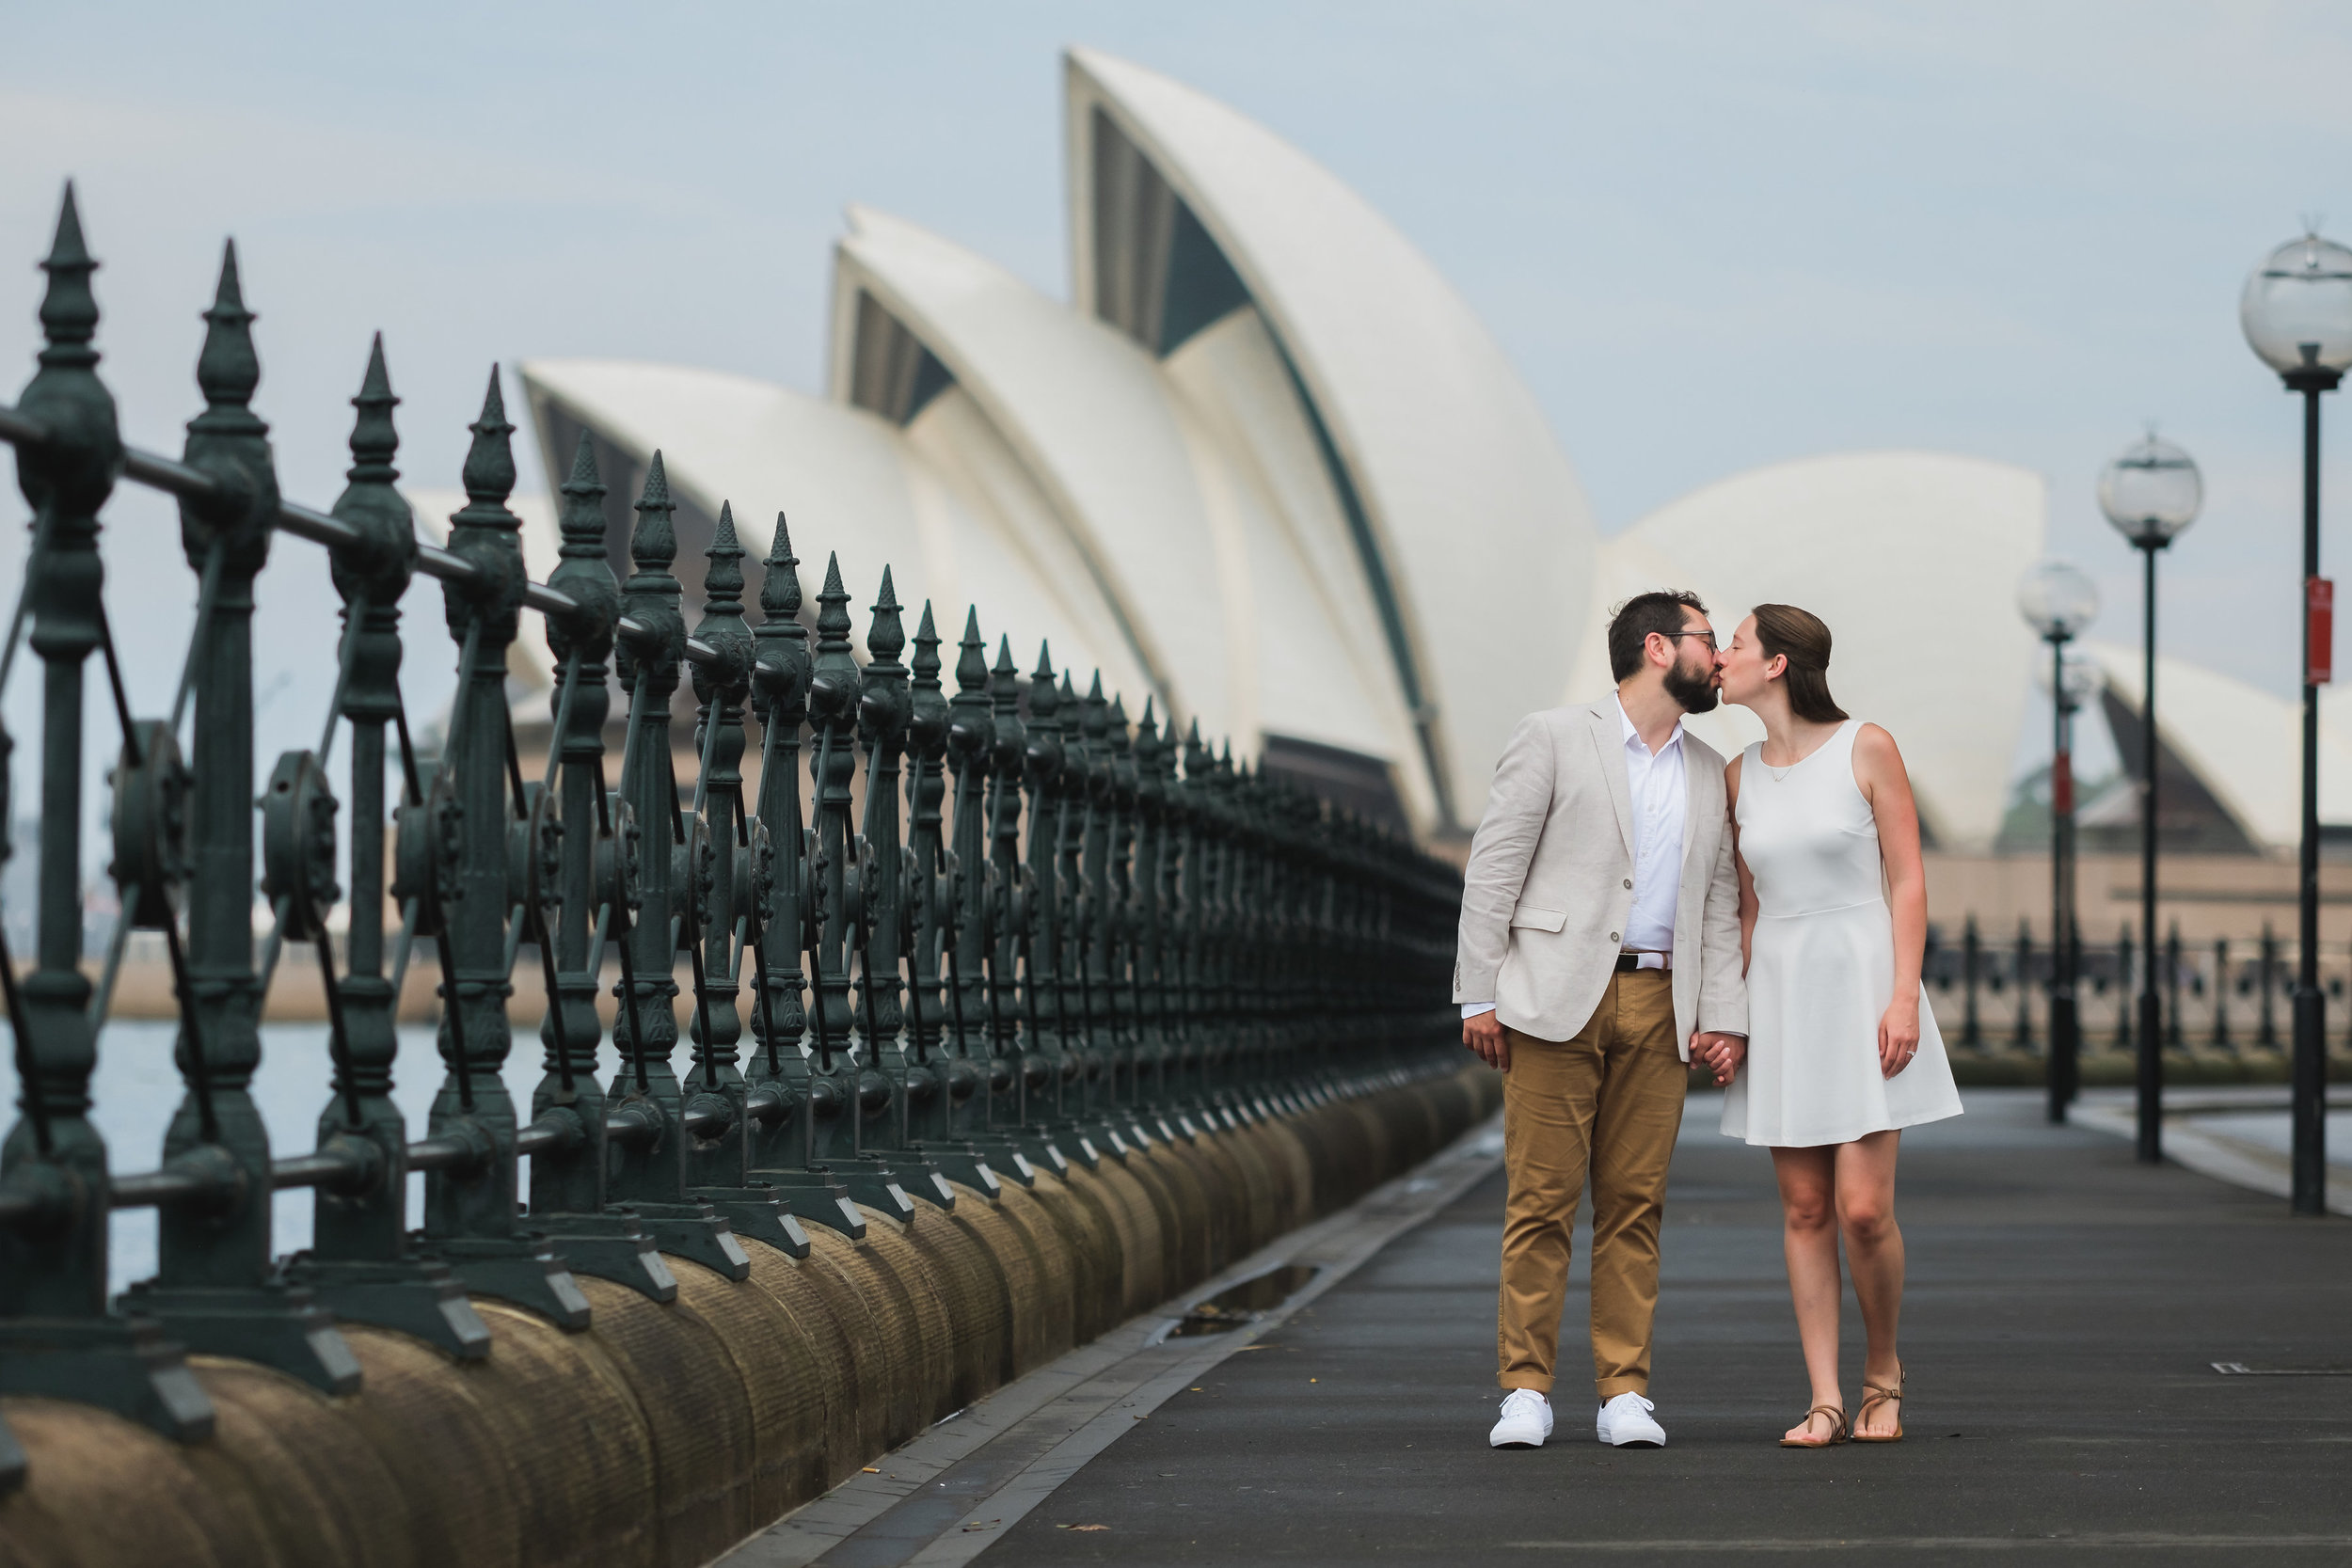 Sydney Prewedding Photography The Rocks Mrs. Macquarie Chair - 04.jpg